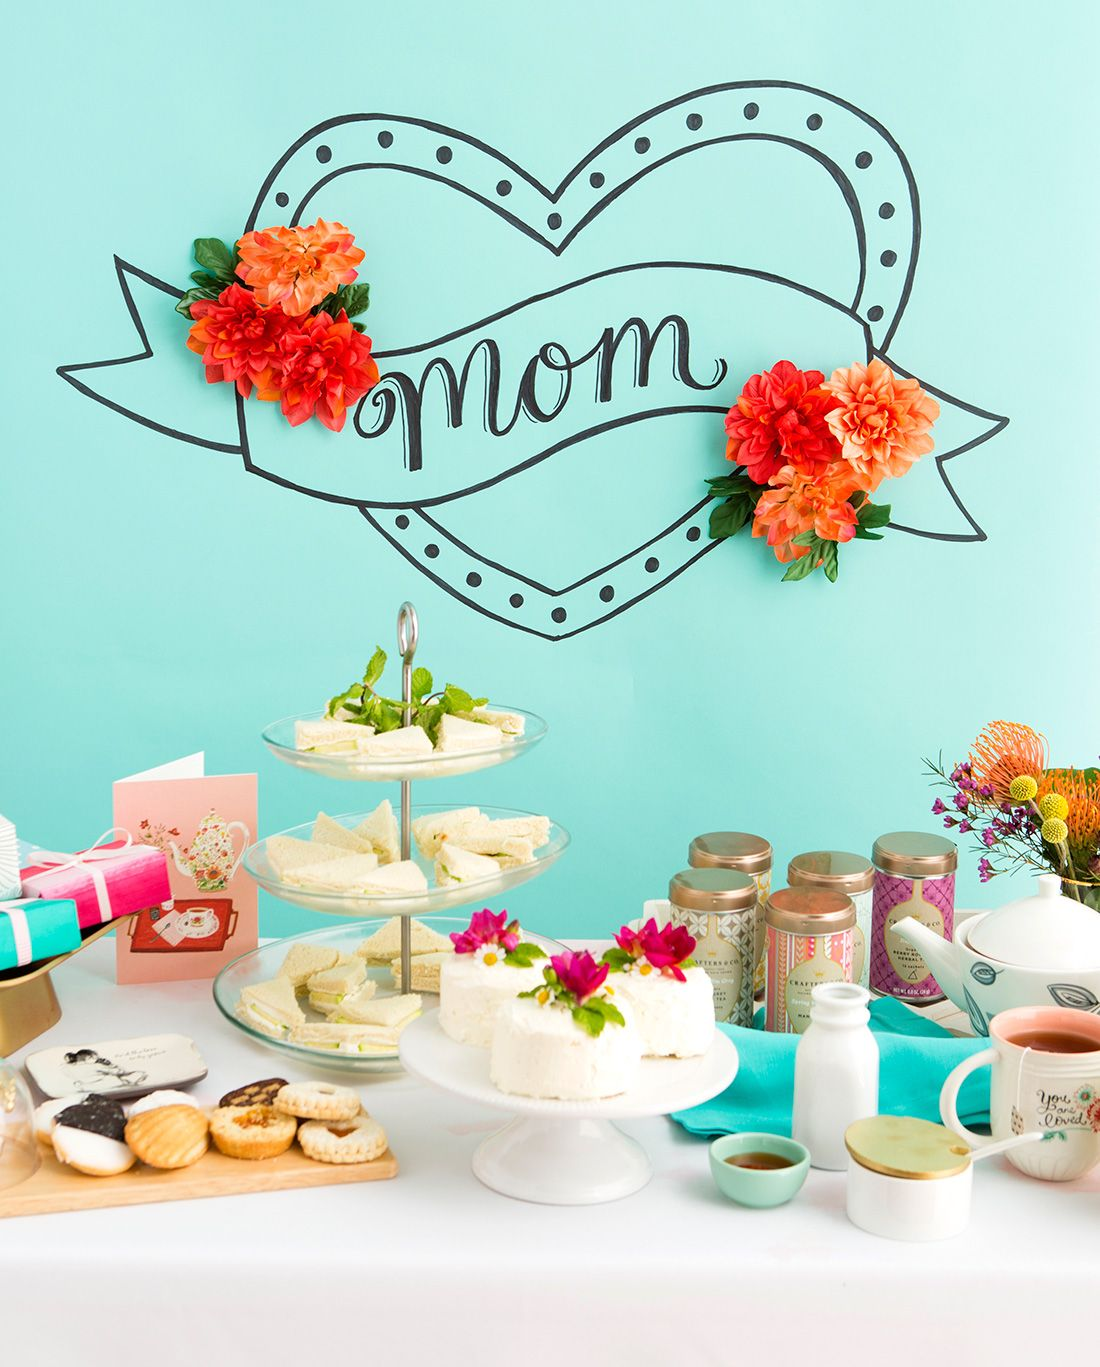 Throw A Tea Party Themed Brunch For Mom This Mothers Day With Tea